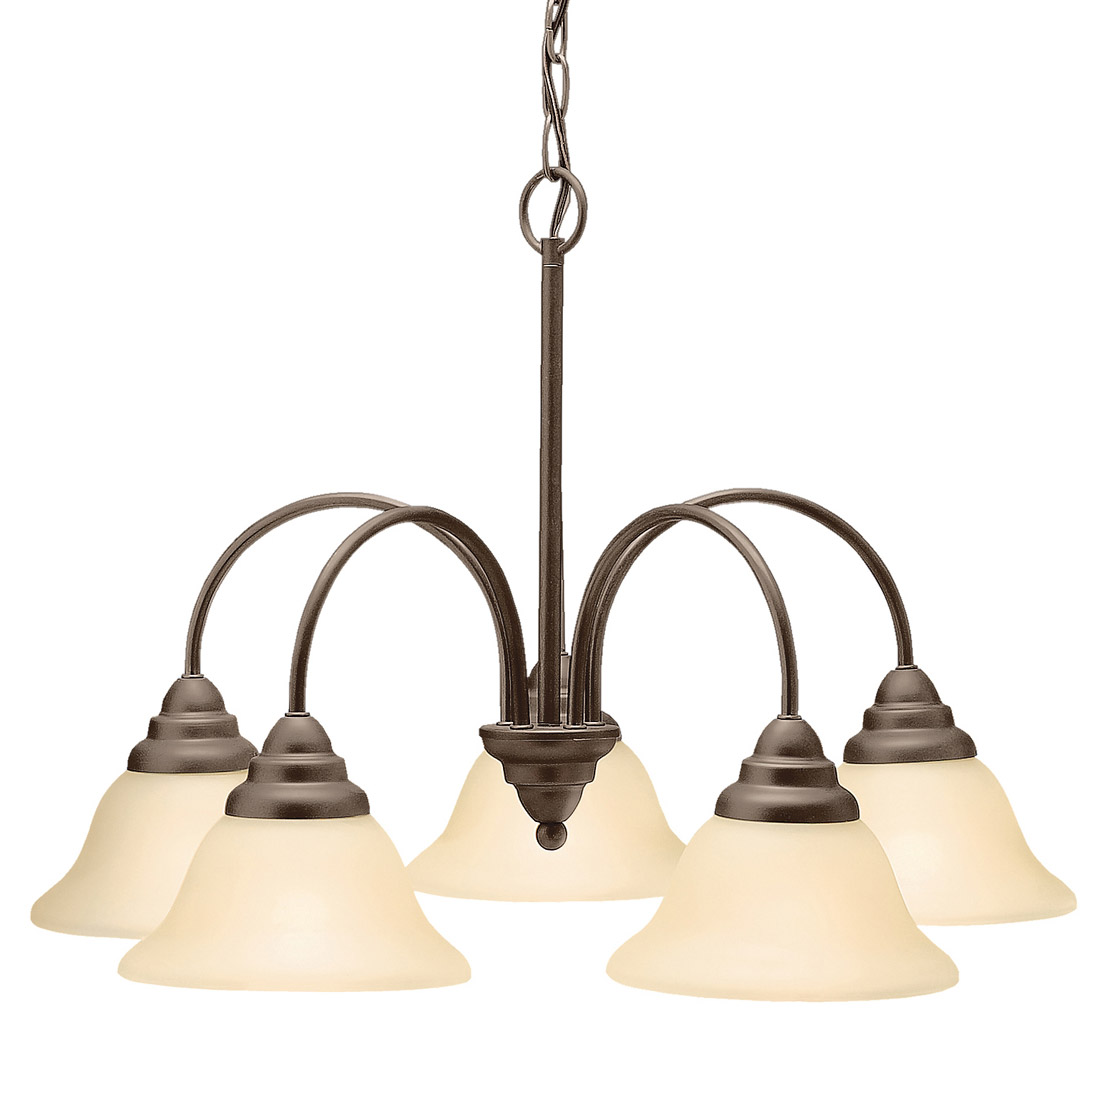 chandeliers products light evan product zoom gray chandelier distressed loading antique kichler